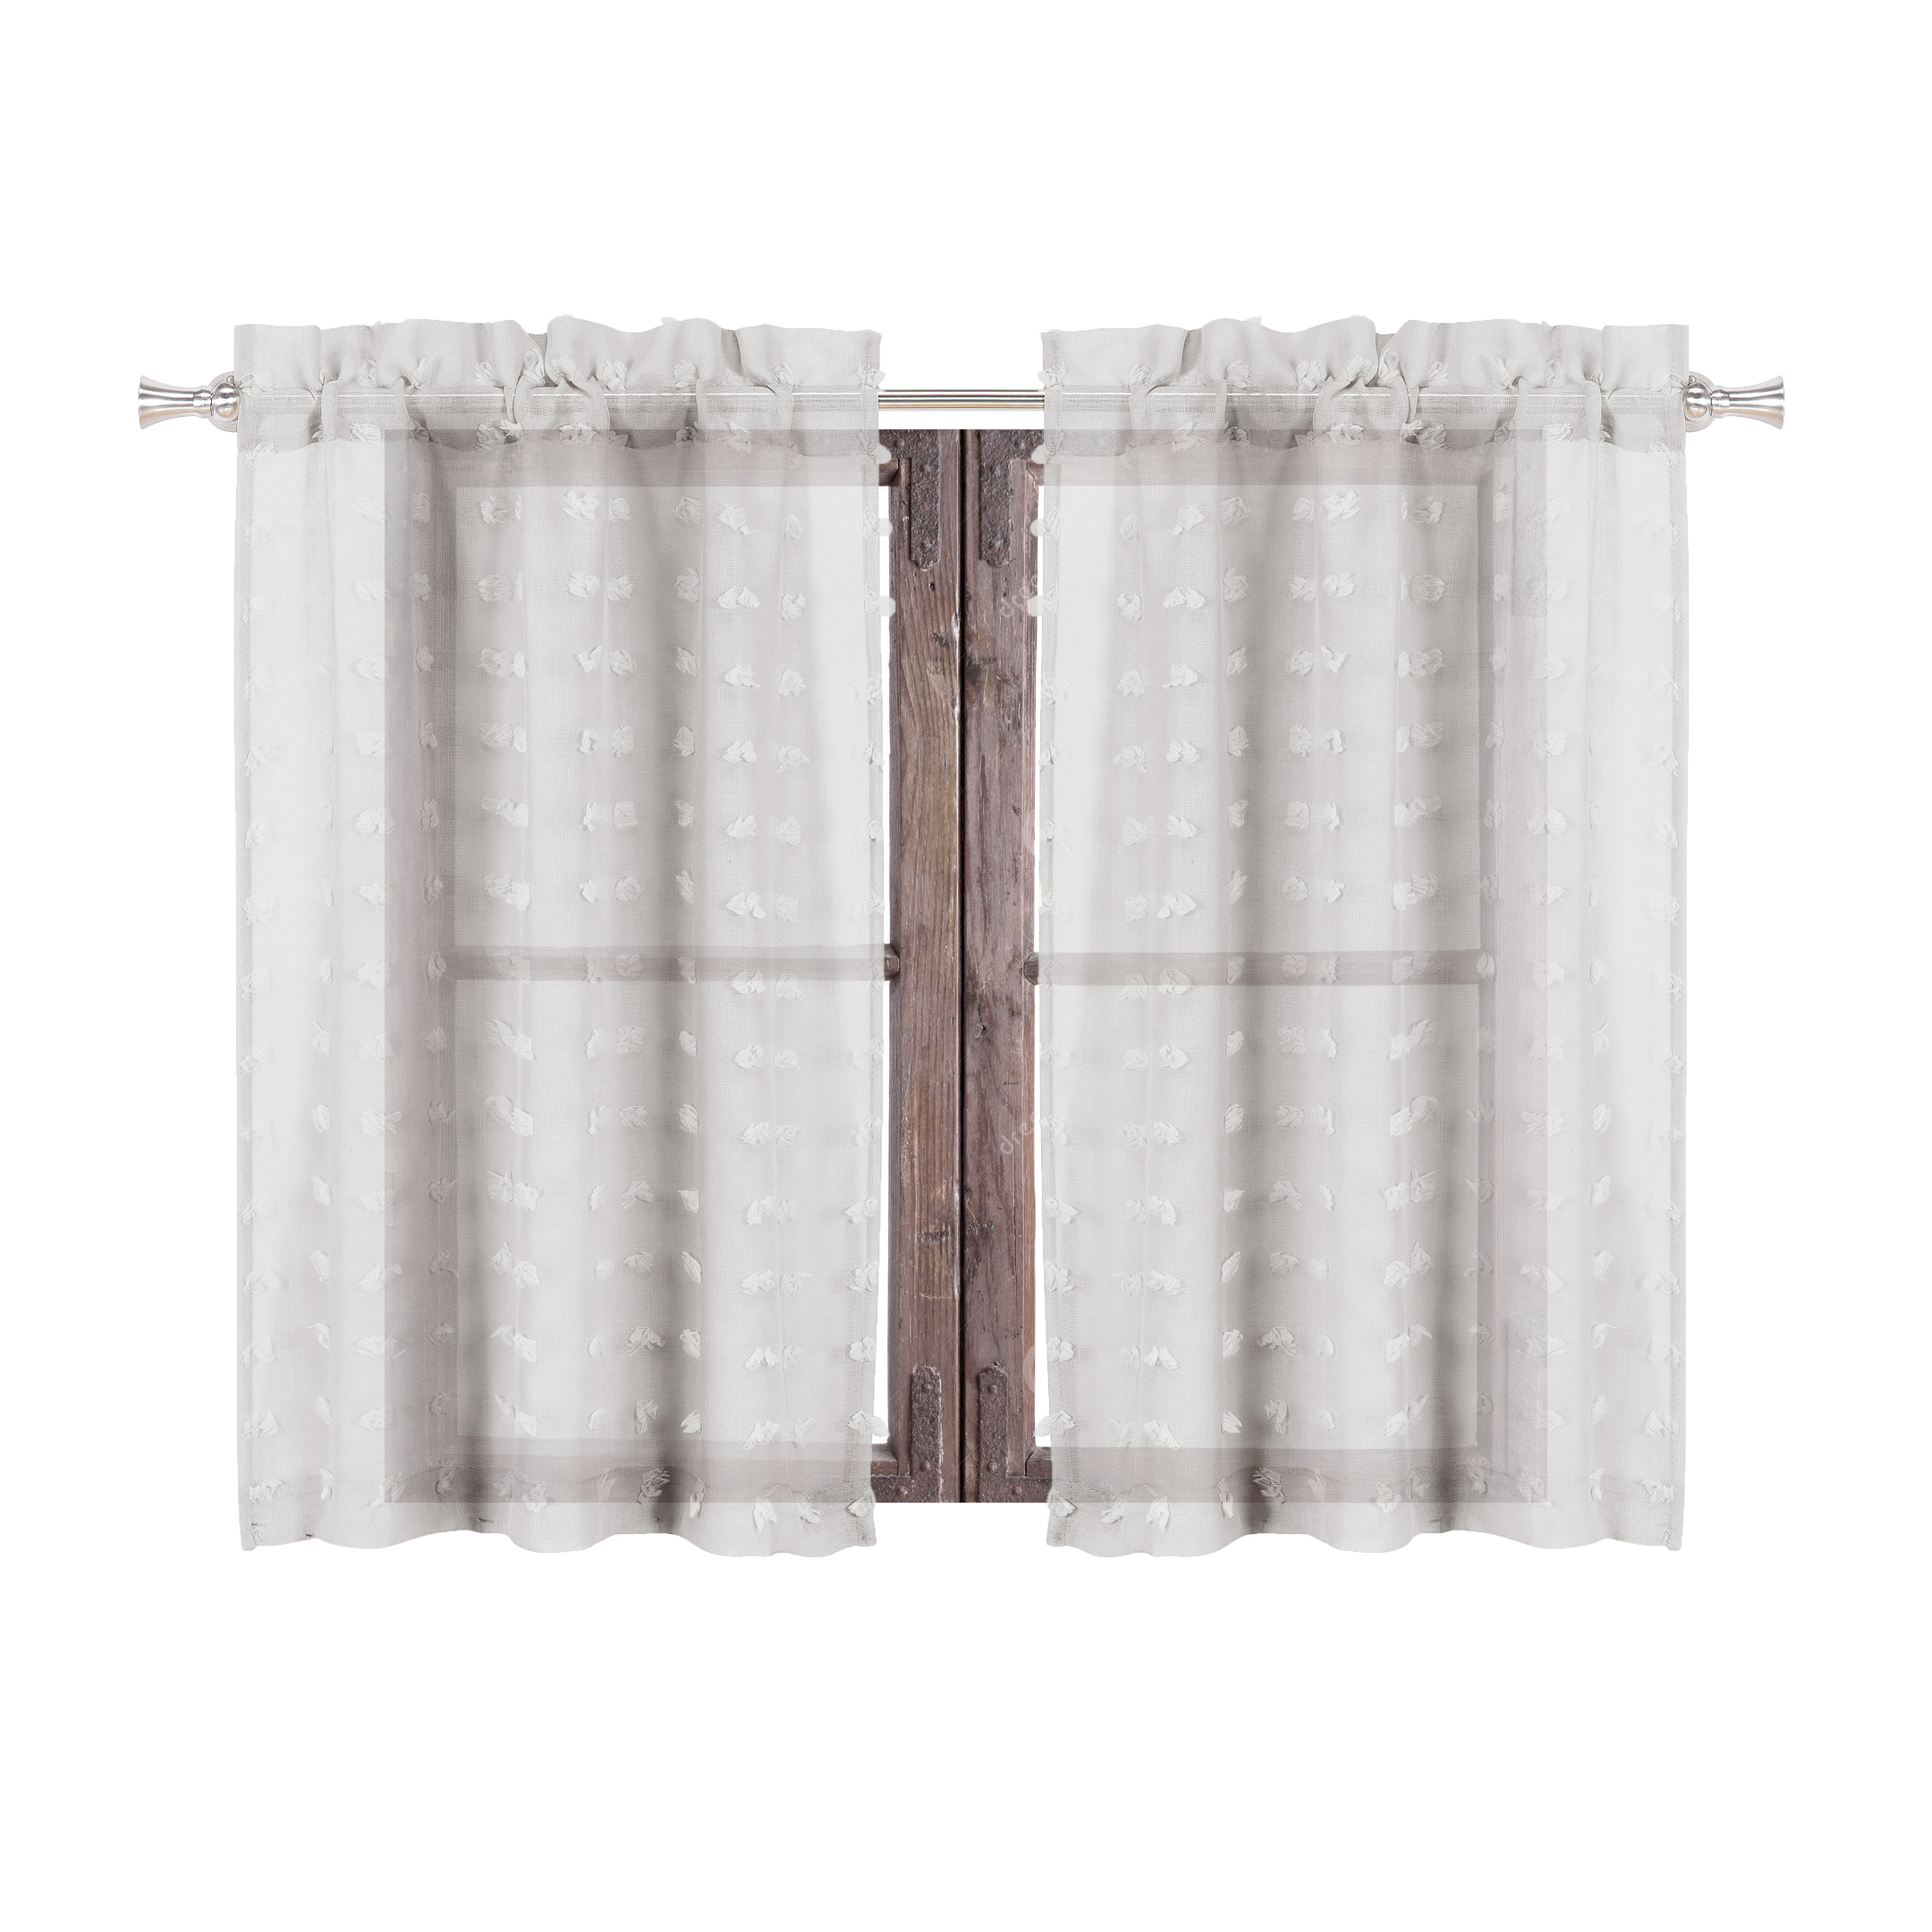 Sheer 2 Piece Silver Café/tier Curtain Set: 3 D Soft Tufts Inside Chic Sheer Voile Vertical Ruffled Window Curtain Tiers (View 19 of 20)